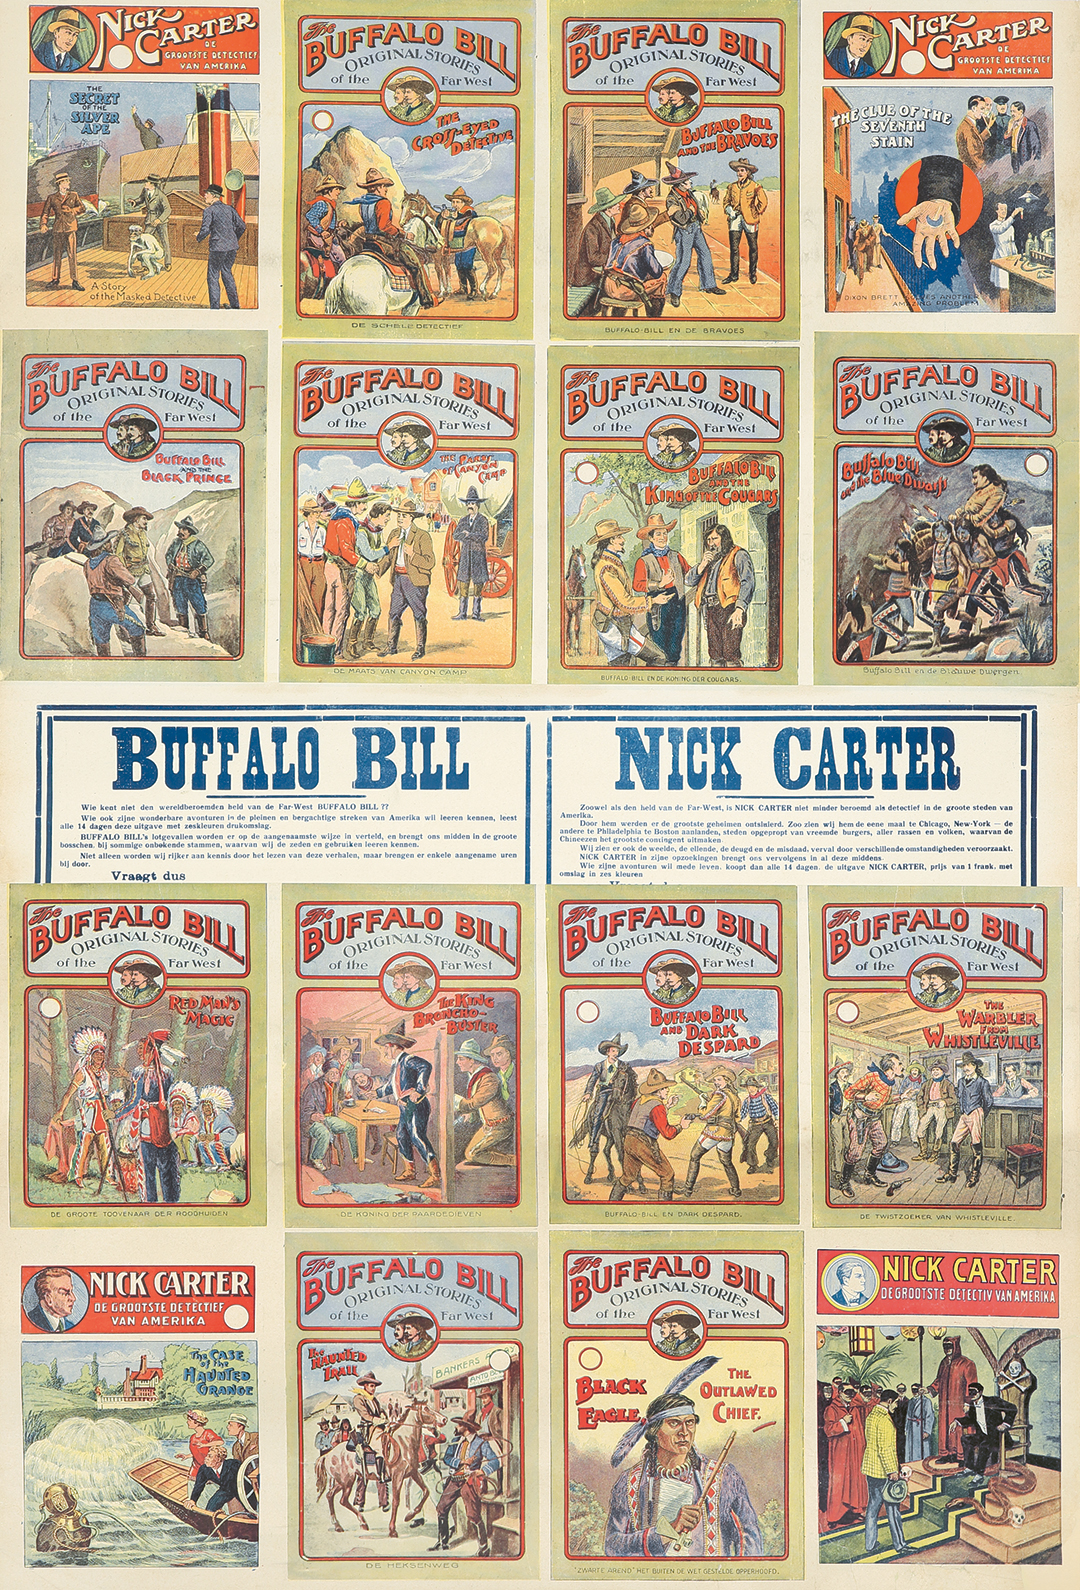 416. Buffalo Bill Stories.